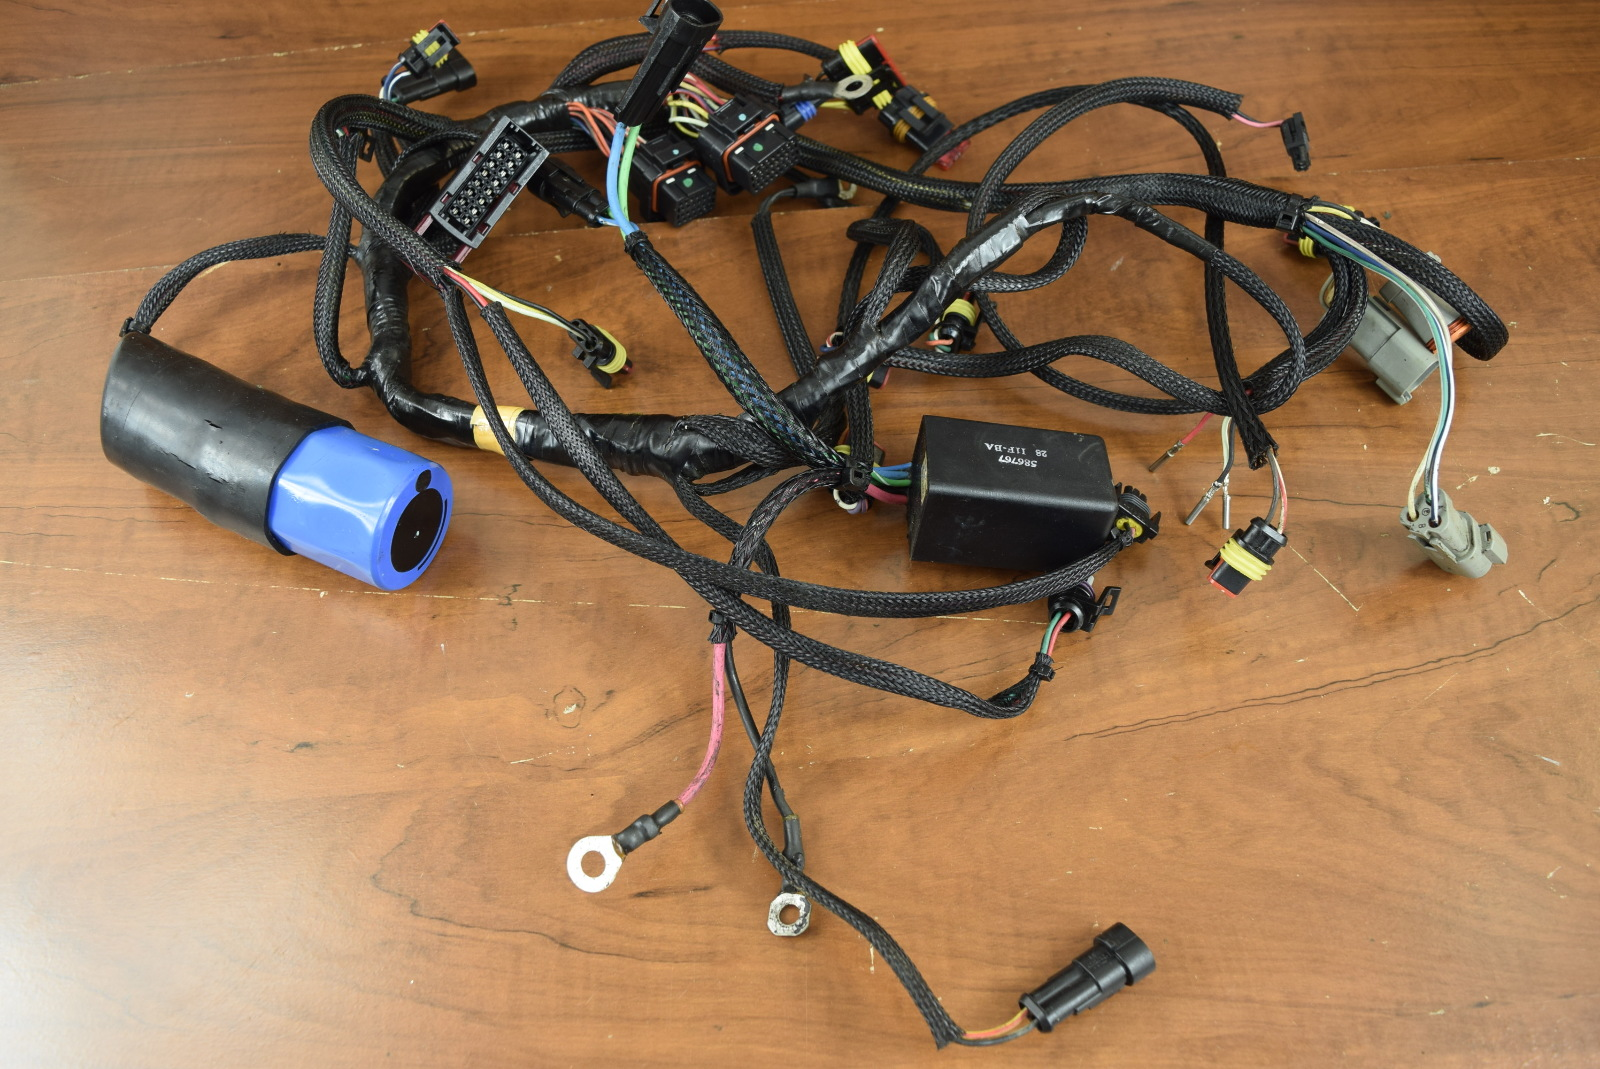 15 Hp Johnson Wiring Harness Electrical Diagrams For Outboards Circuit And Diagram Hub U2022 1985 Outboard